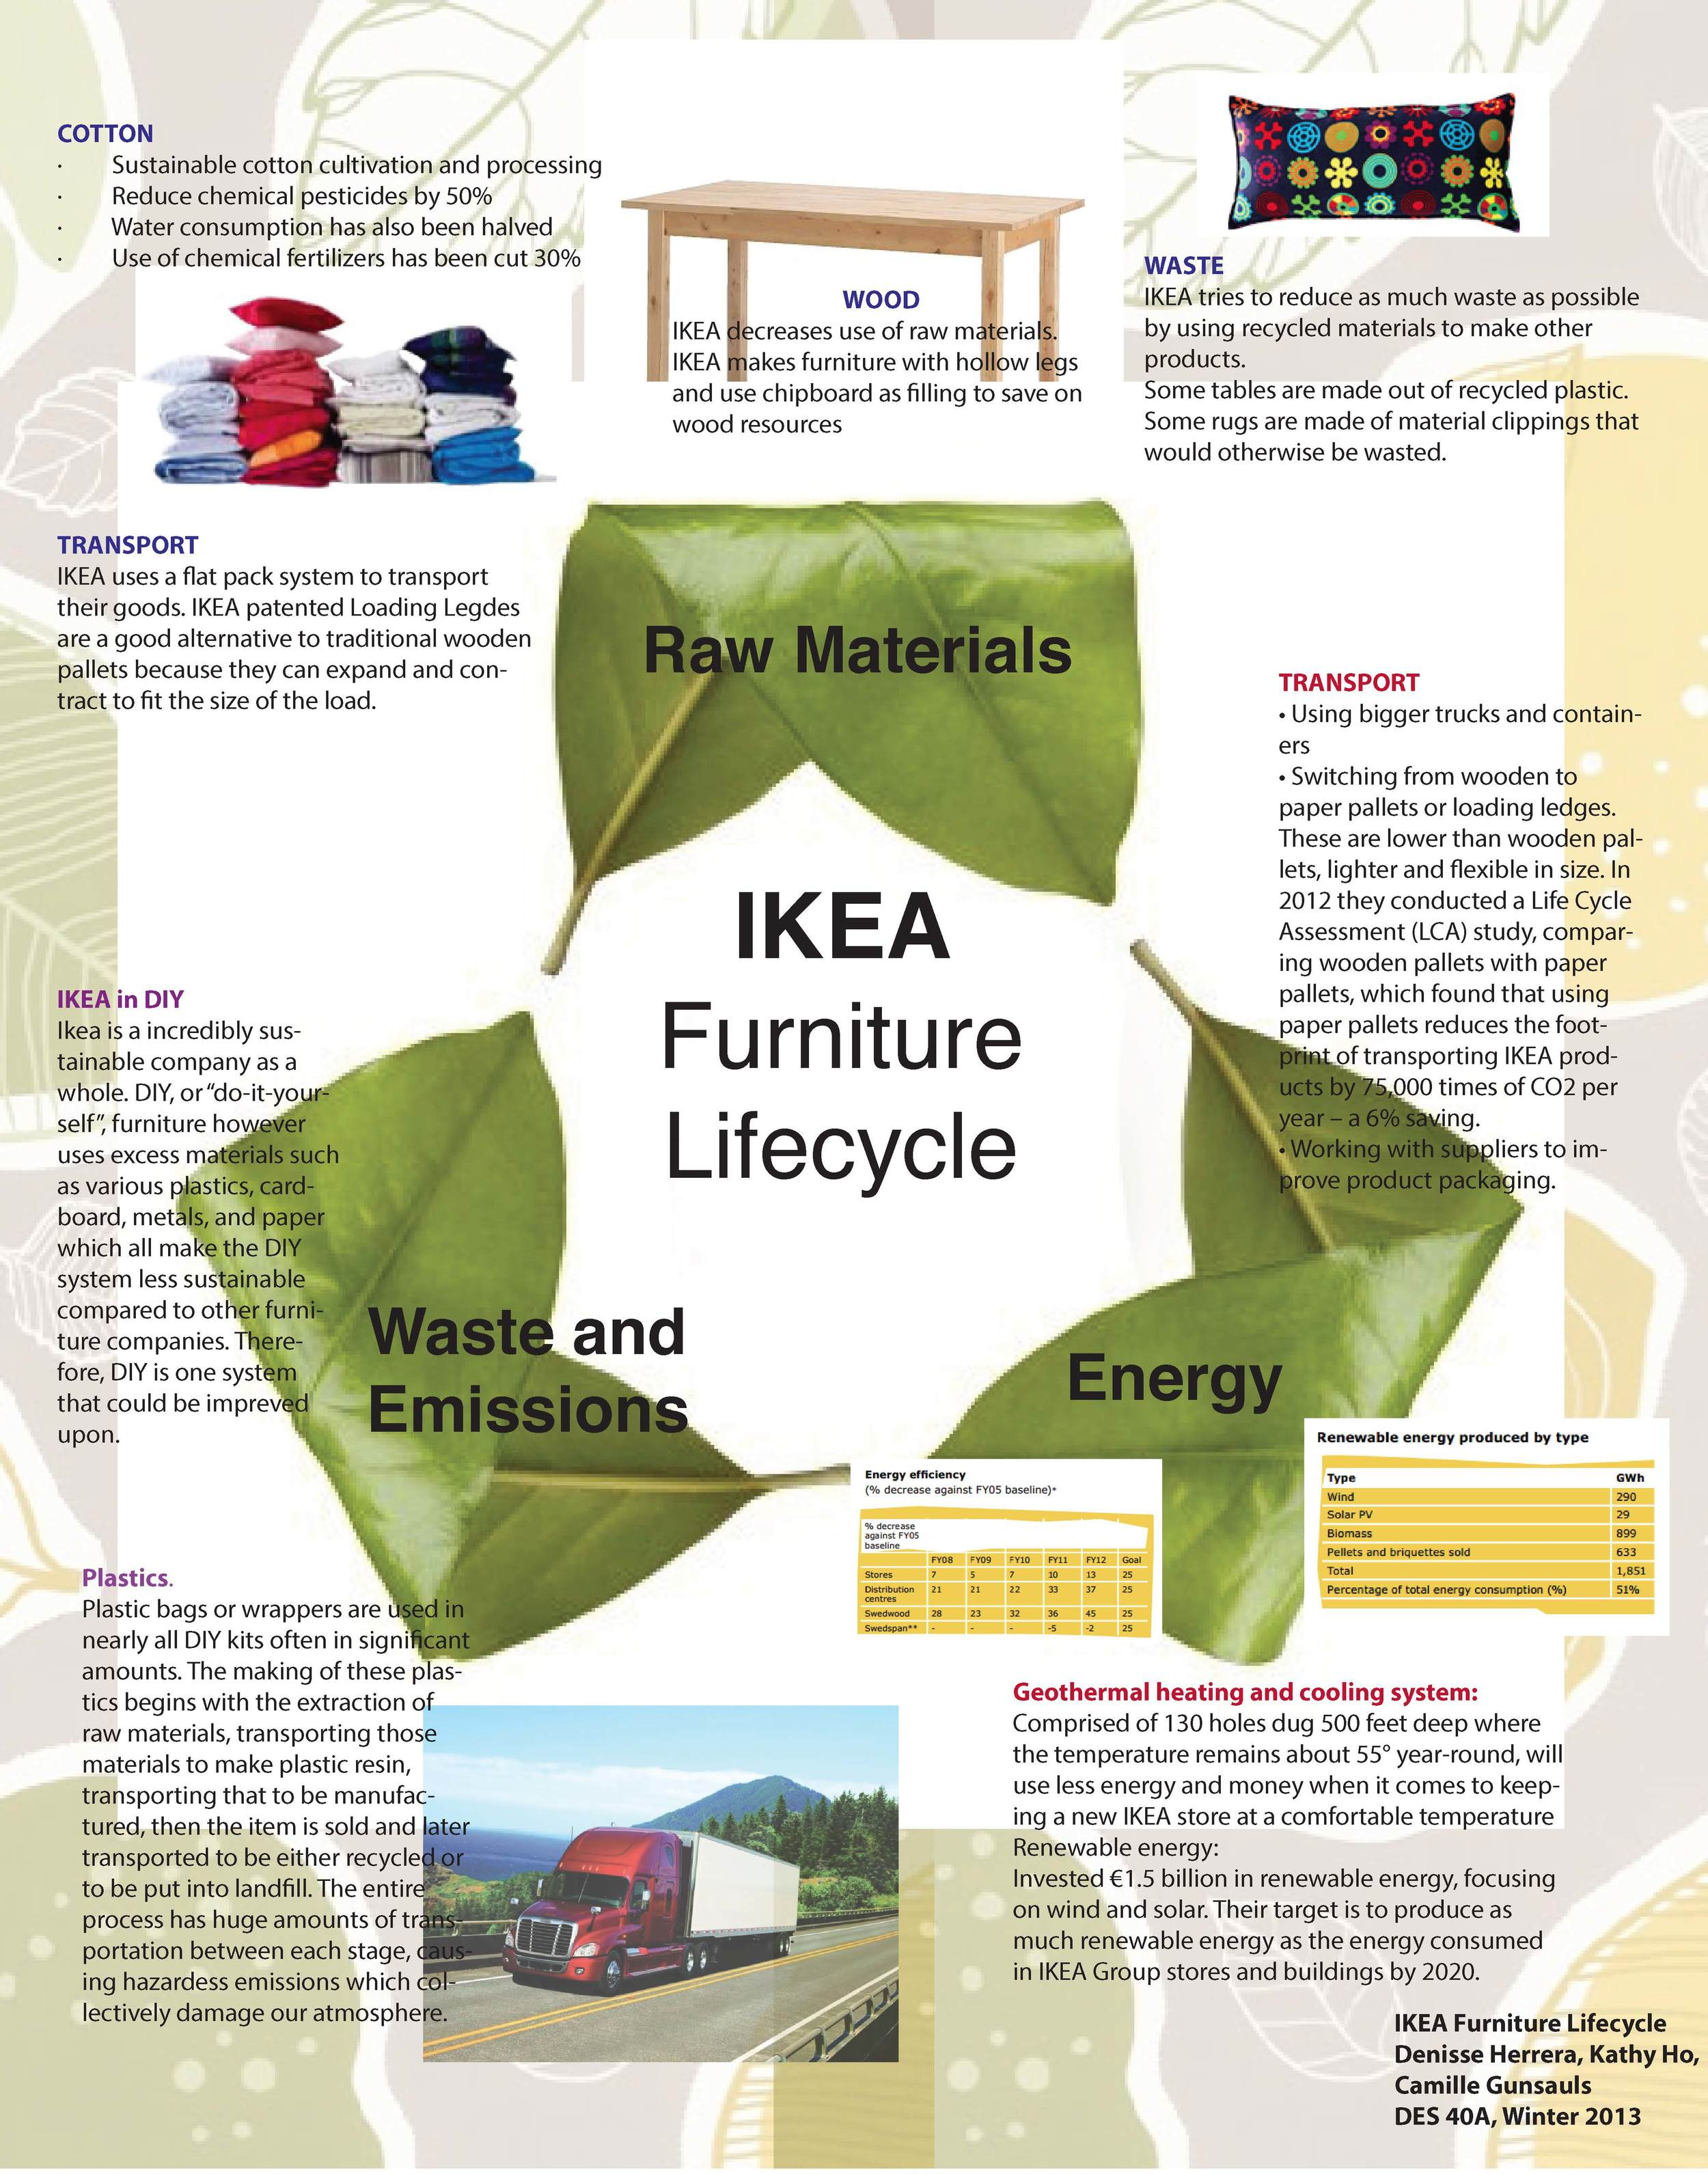 Ikea Self Assembly Process Design Life Cycle